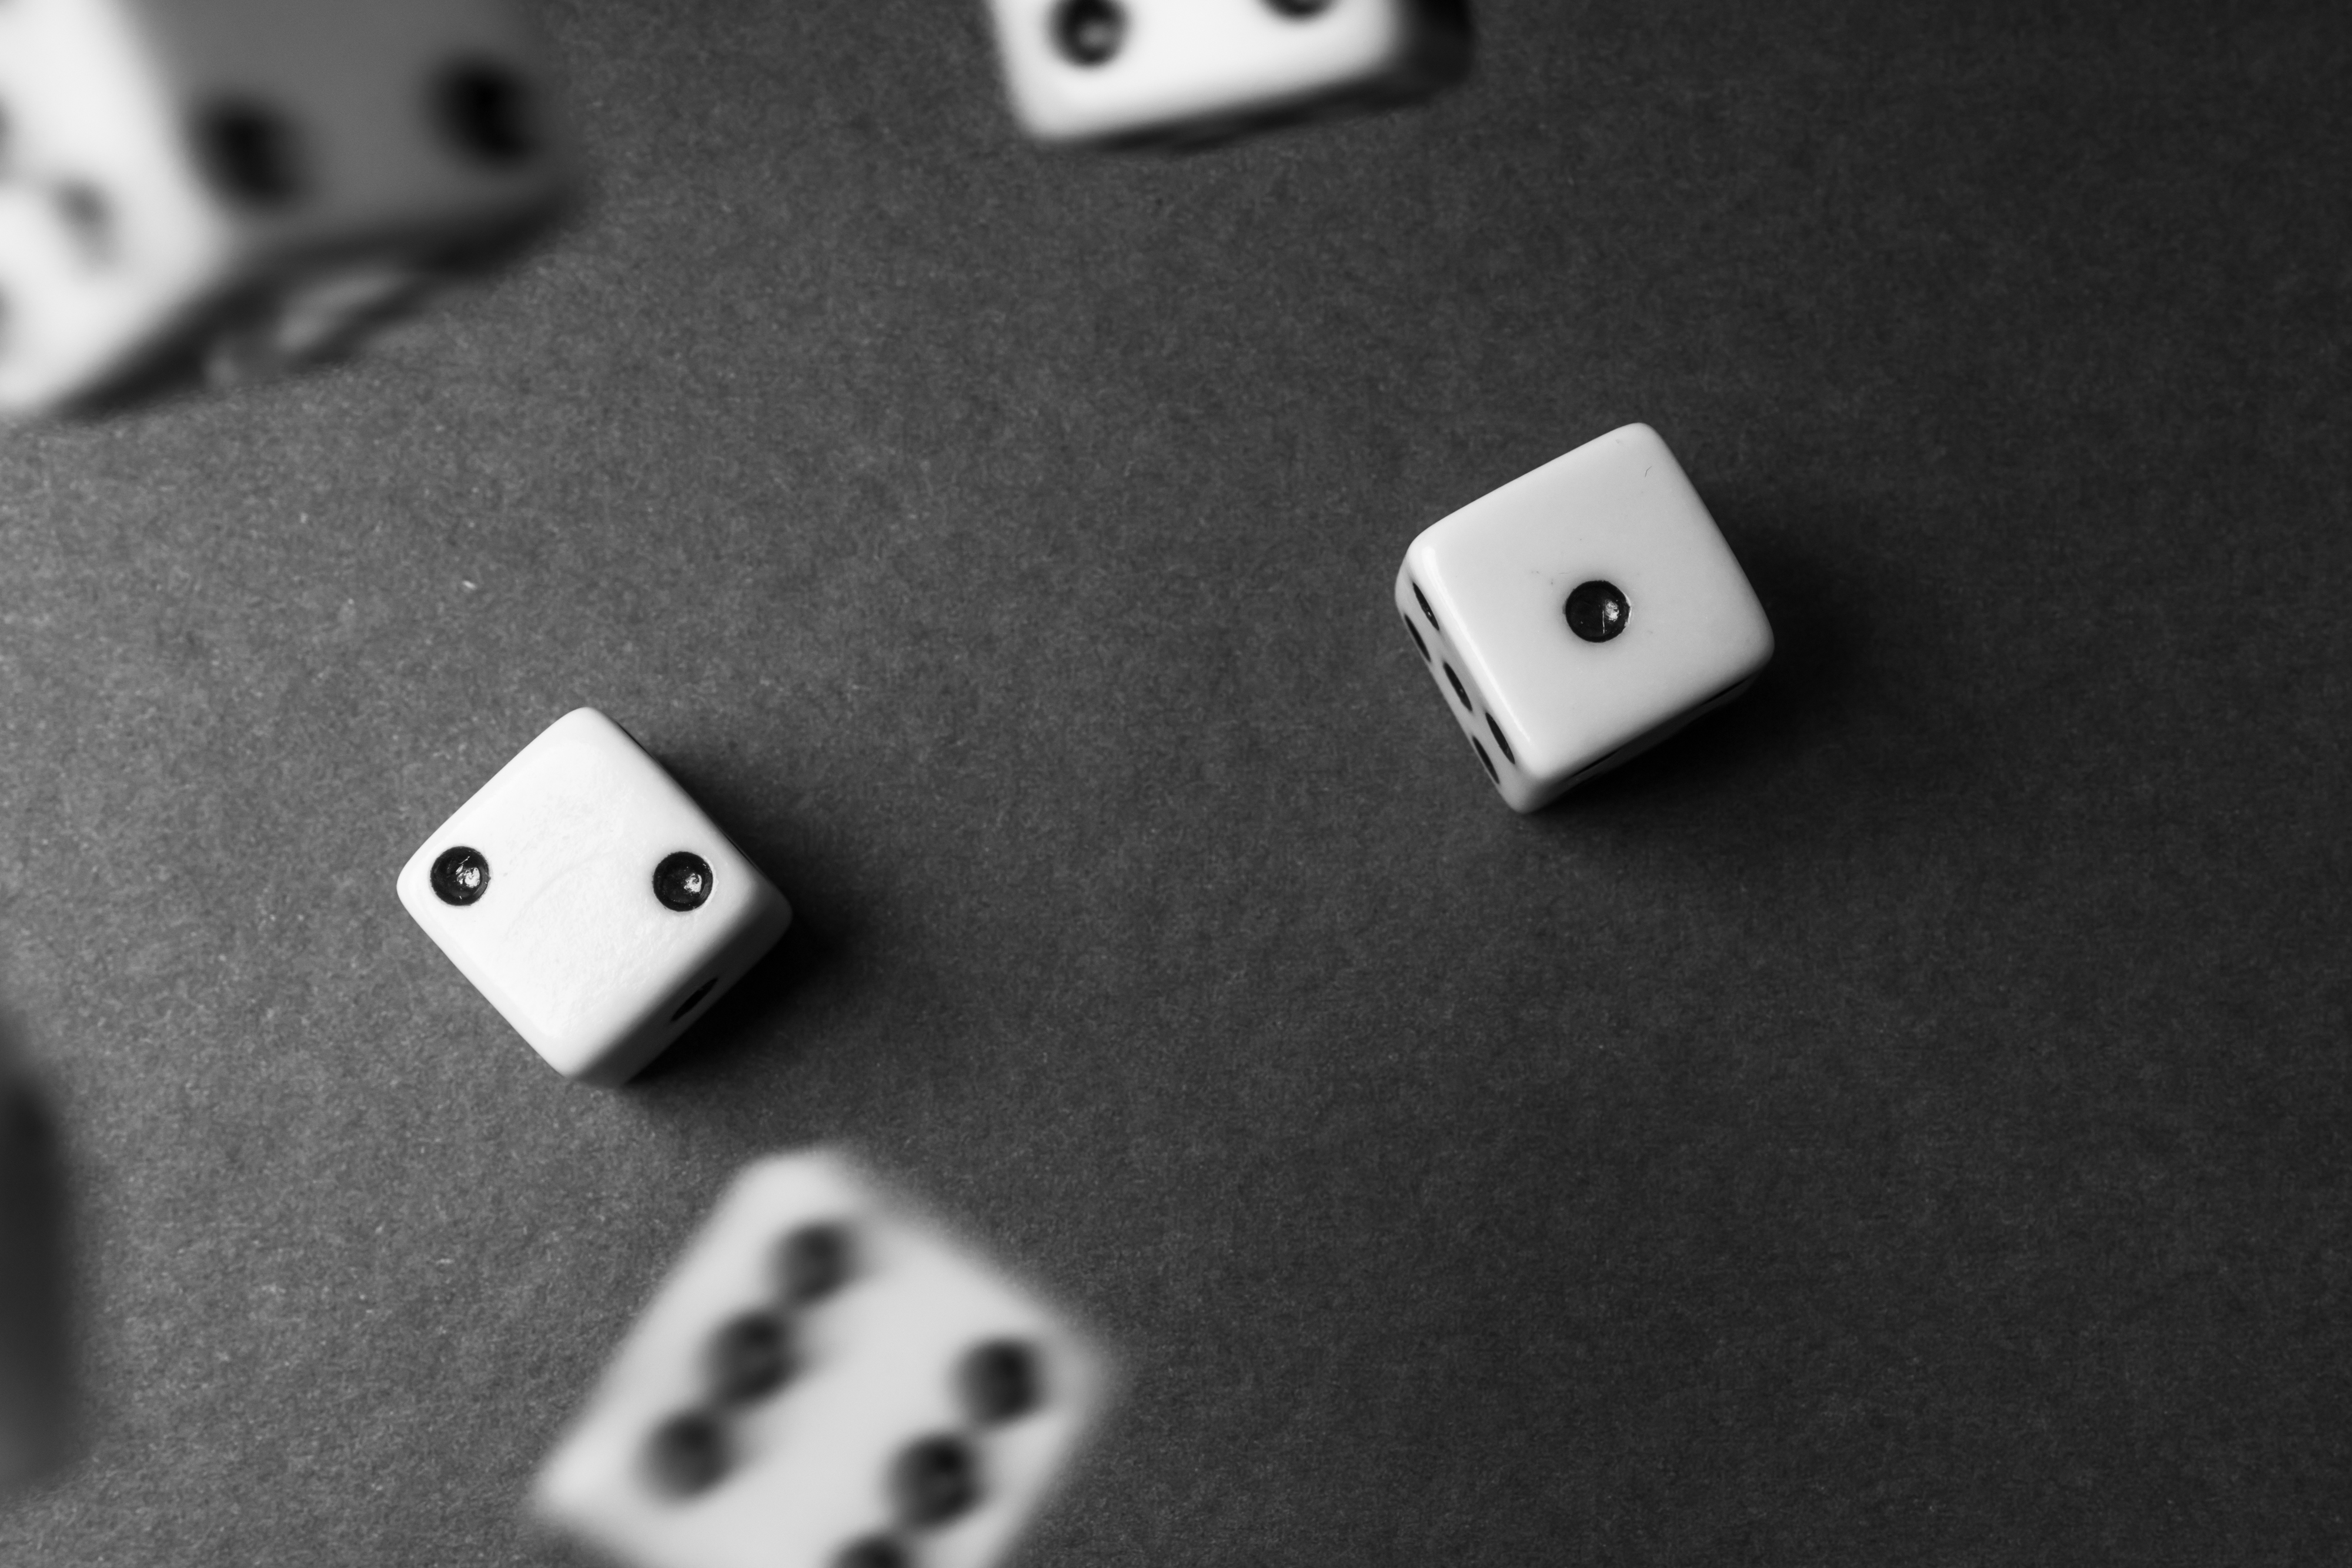 How to Solve Basic Probability Problems Involving a Coin Flip